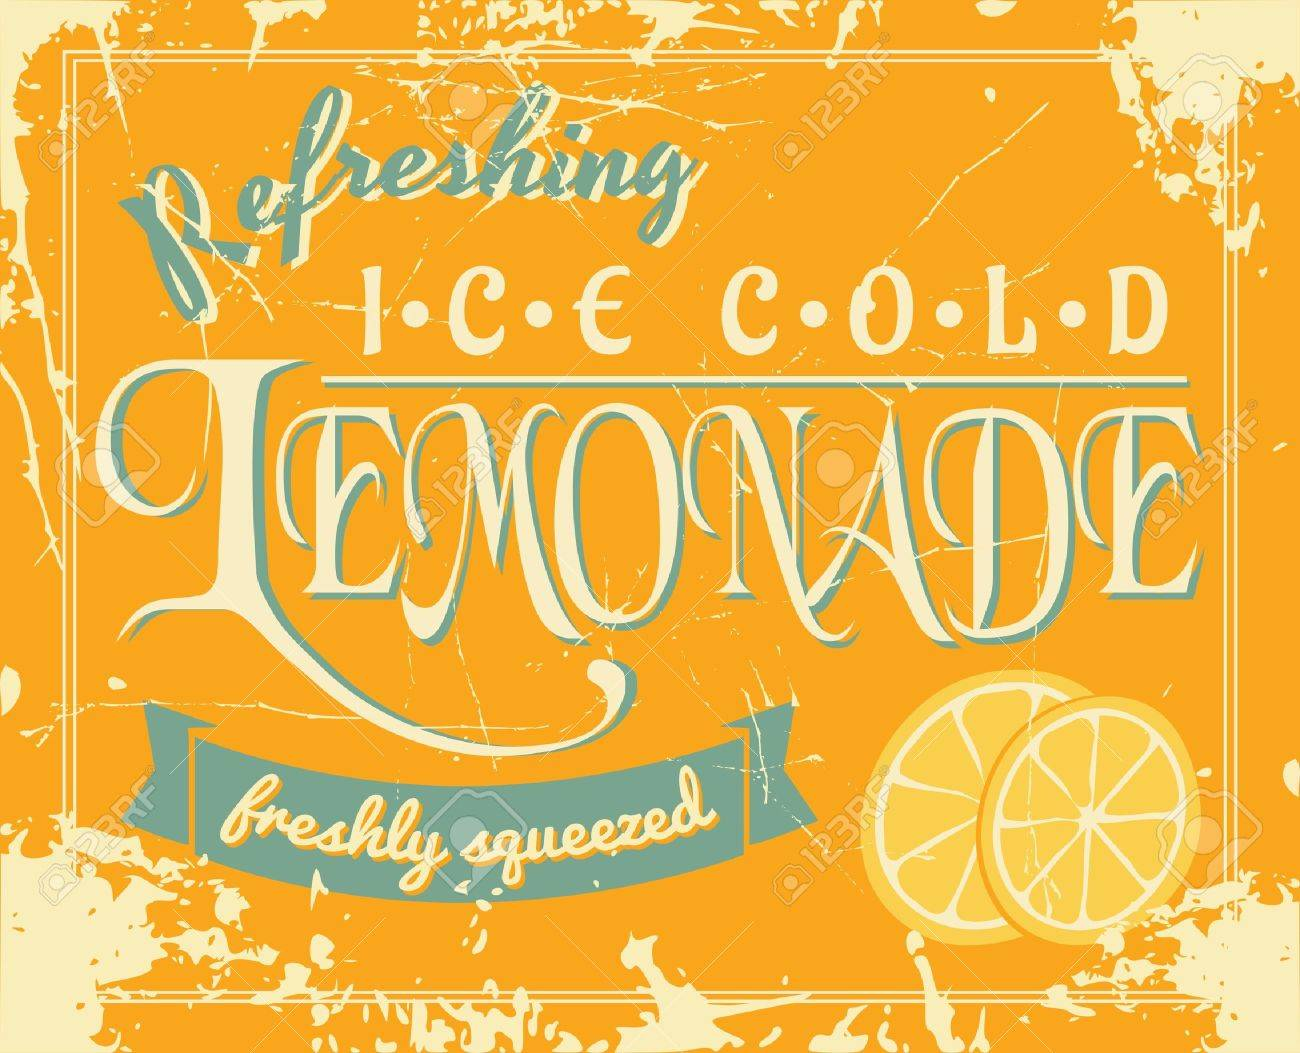 Lemonade Poster In Vintage Style. Royalty Free Cliparts, Vectors ...